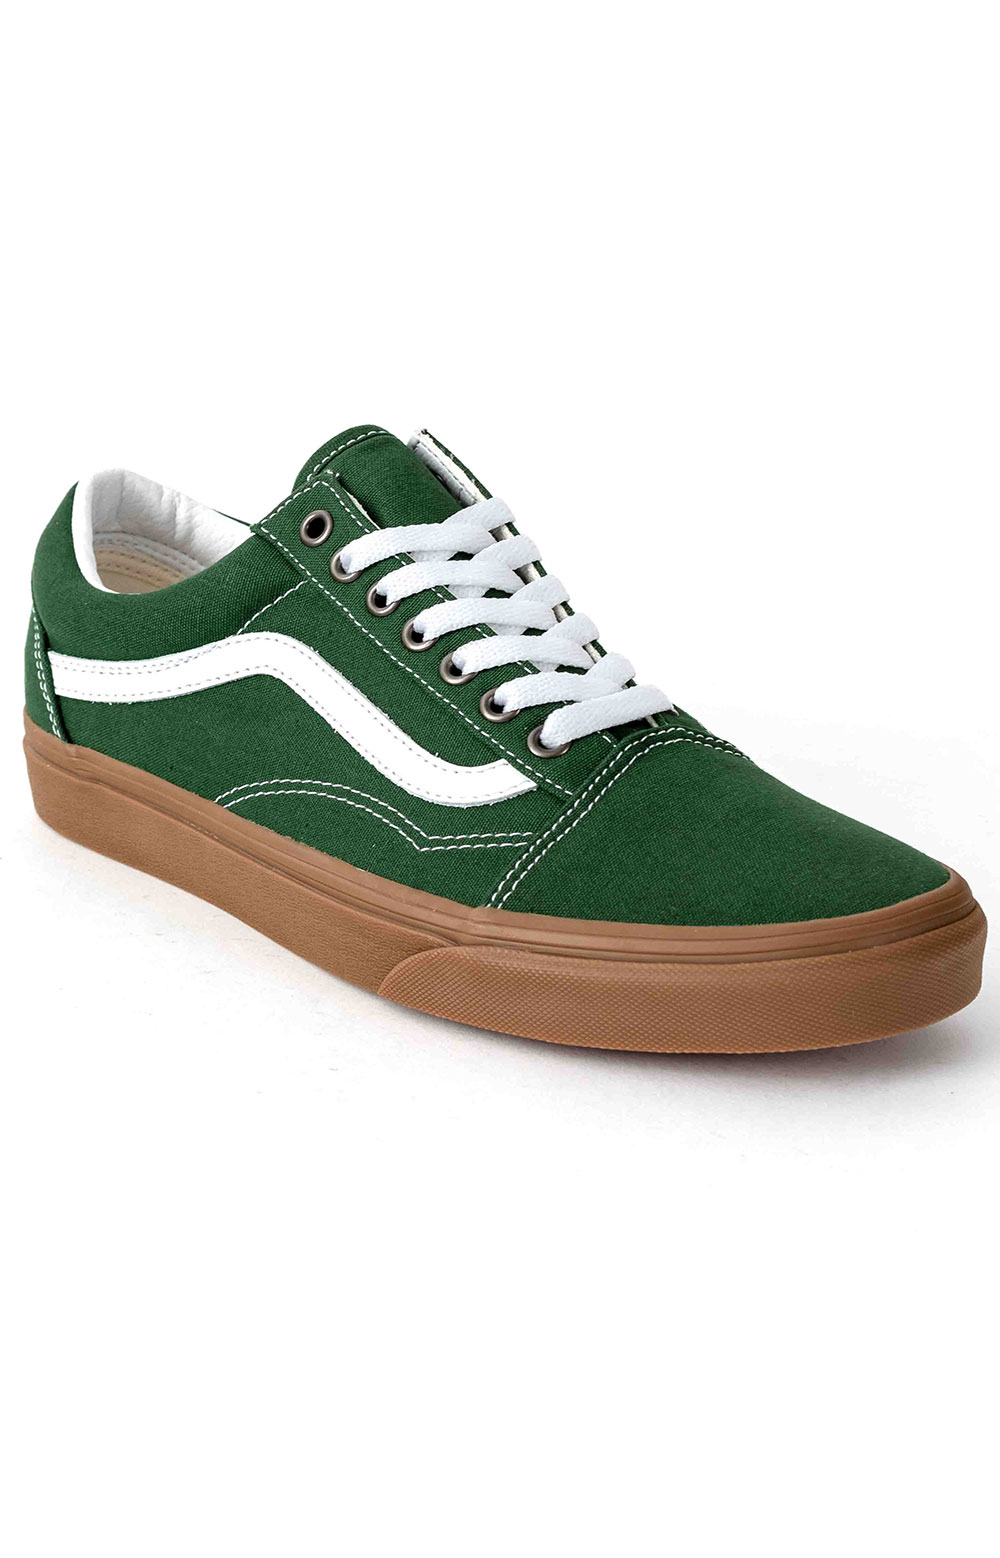 (U3BWYY) Gum Old Skool Shoe - Green Pastures  3